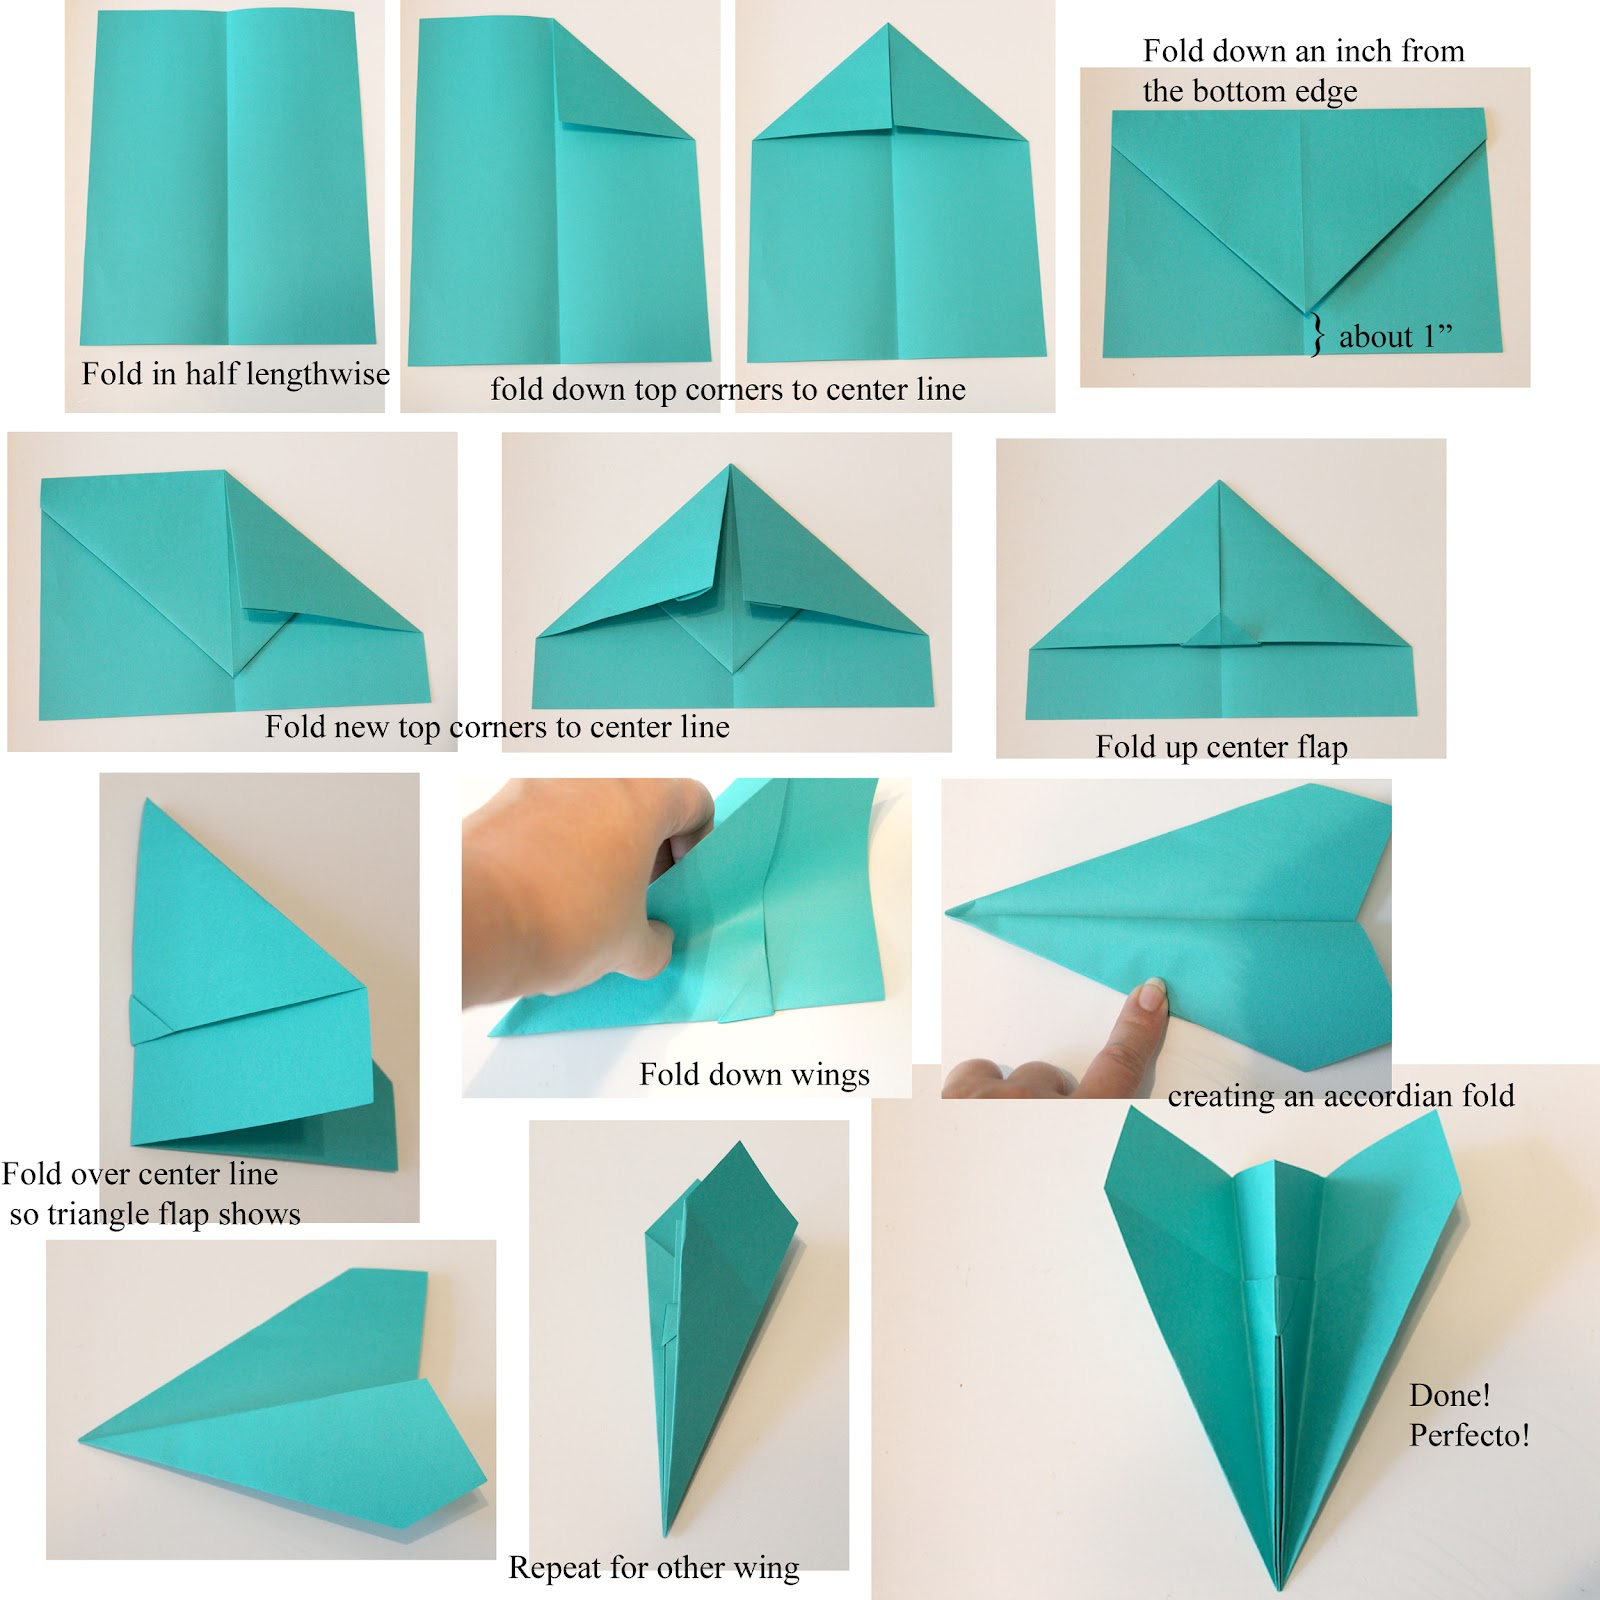 How To Make Decorations With Construction Paper